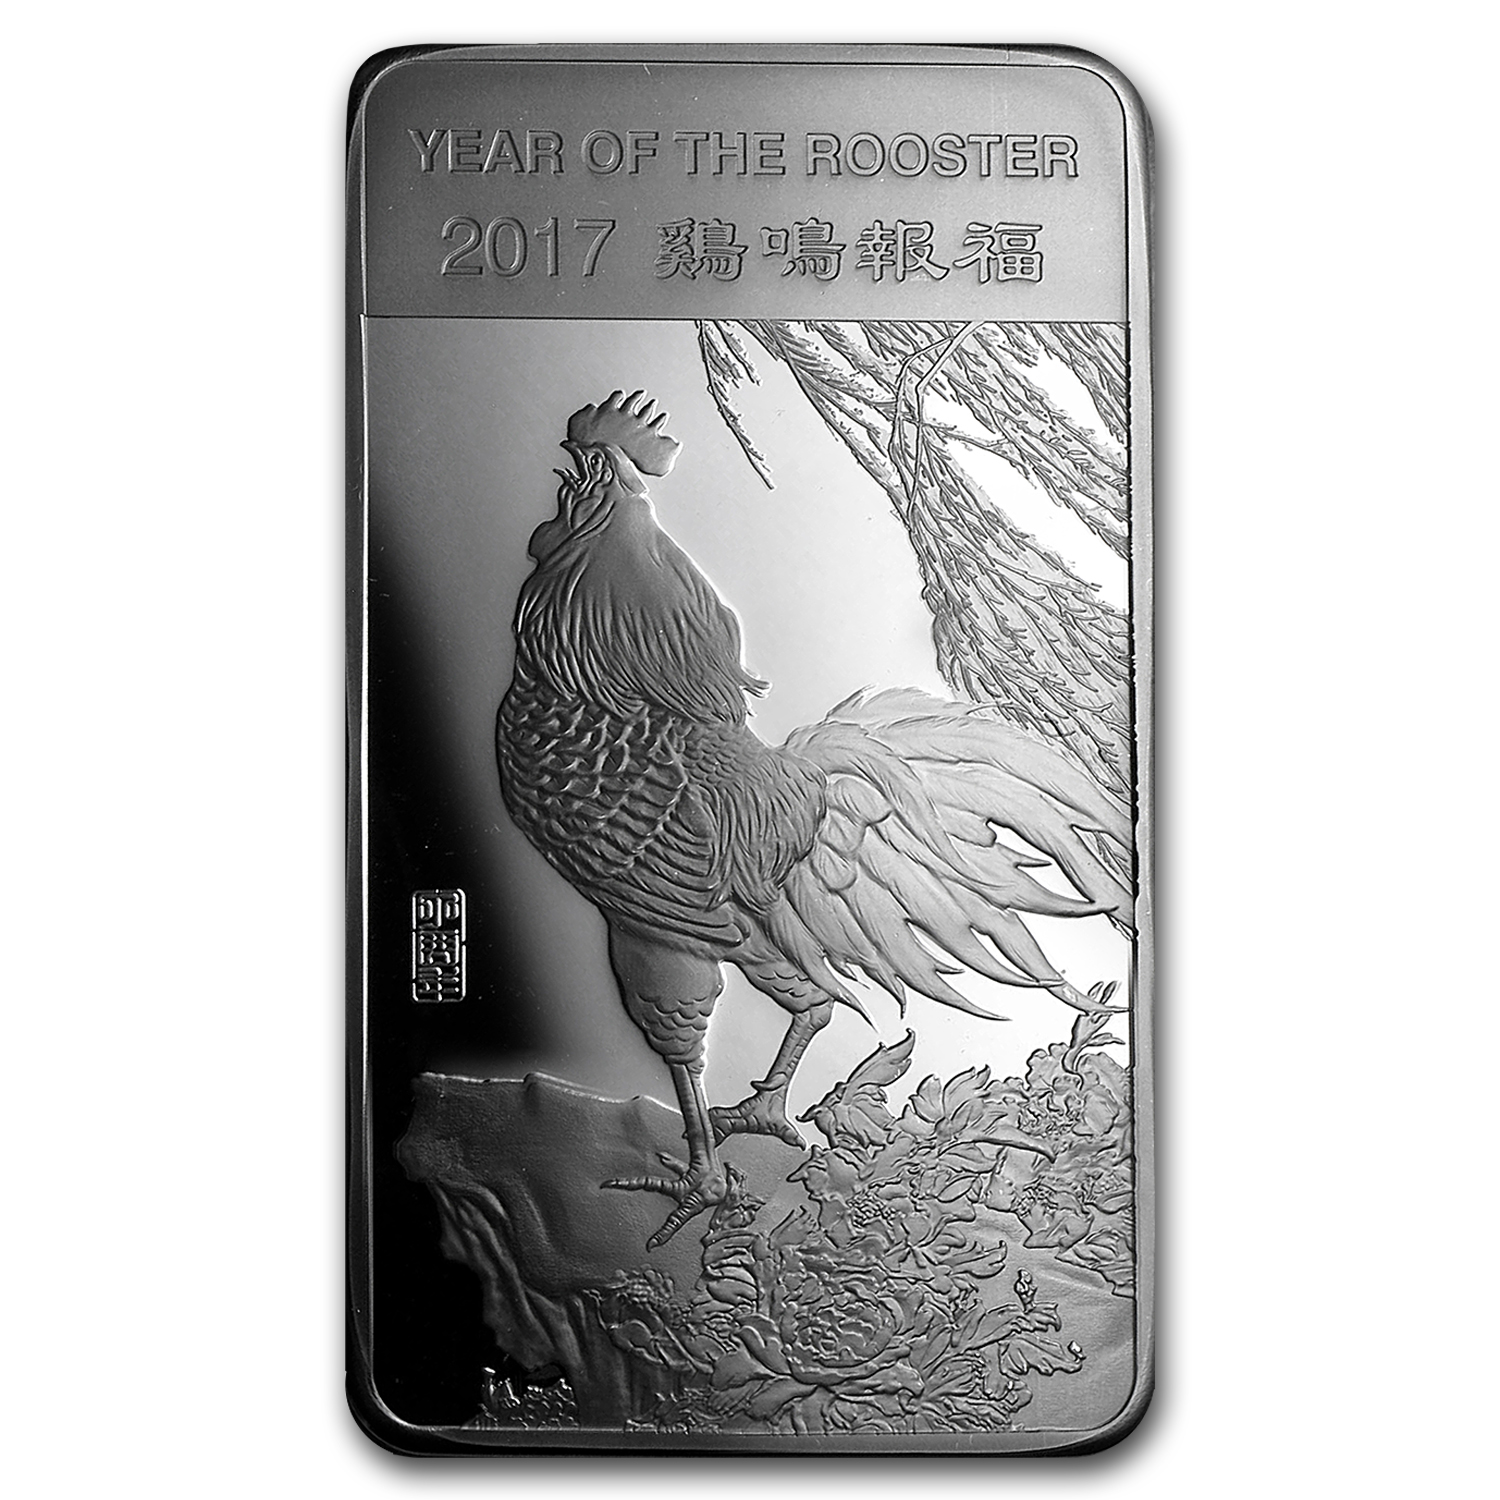 10 oz Silver Bar - APMEX (2017 Year of the Rooster)